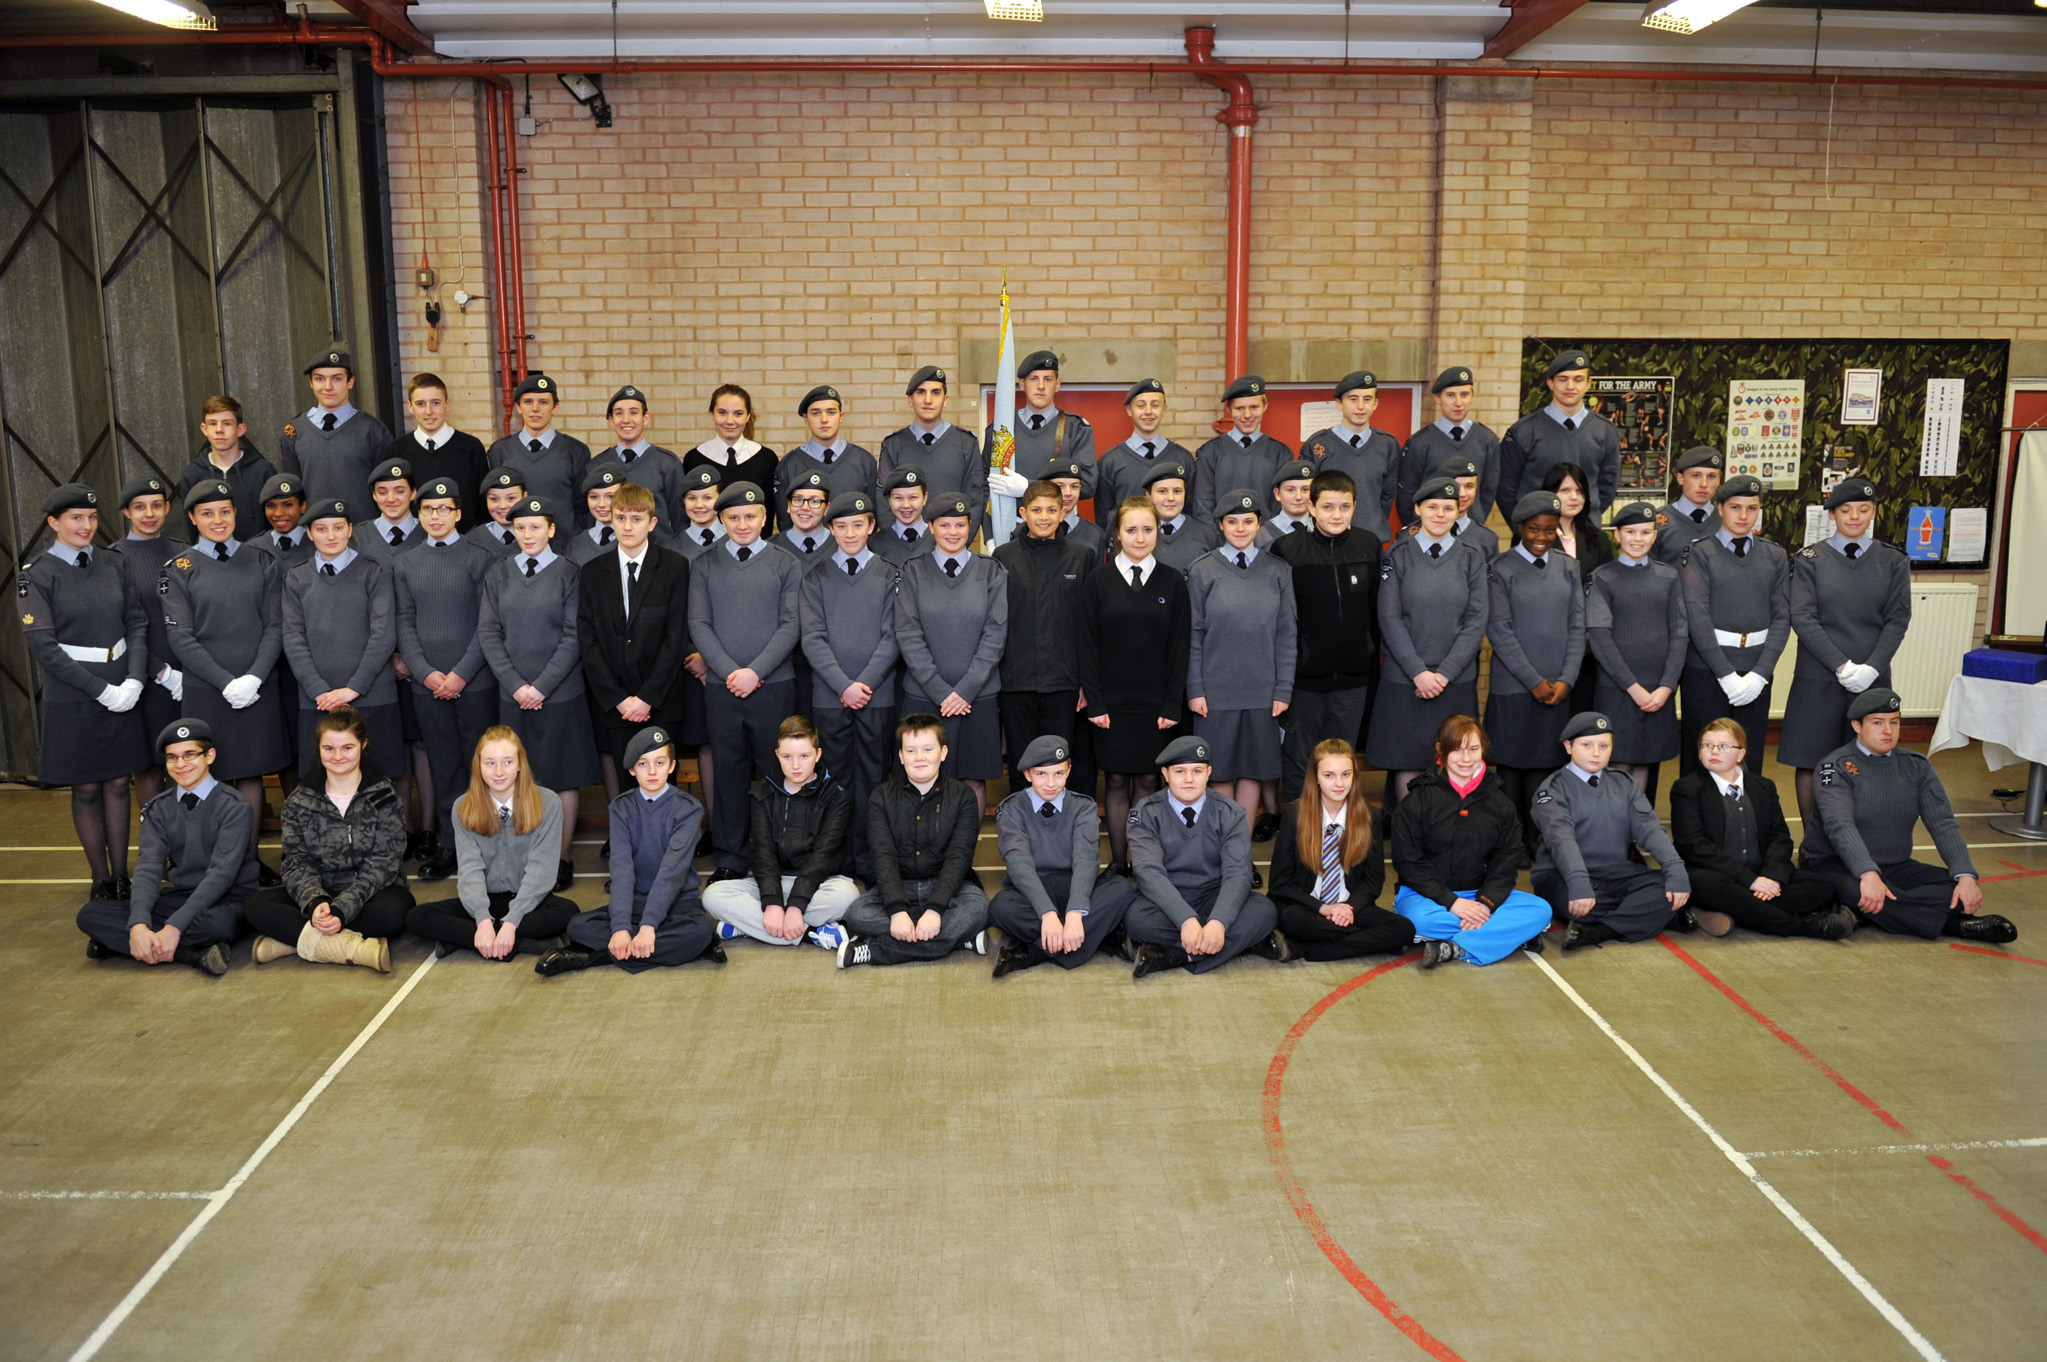 50th anniversary of 303 (Worksop) Squadron Air Cadets